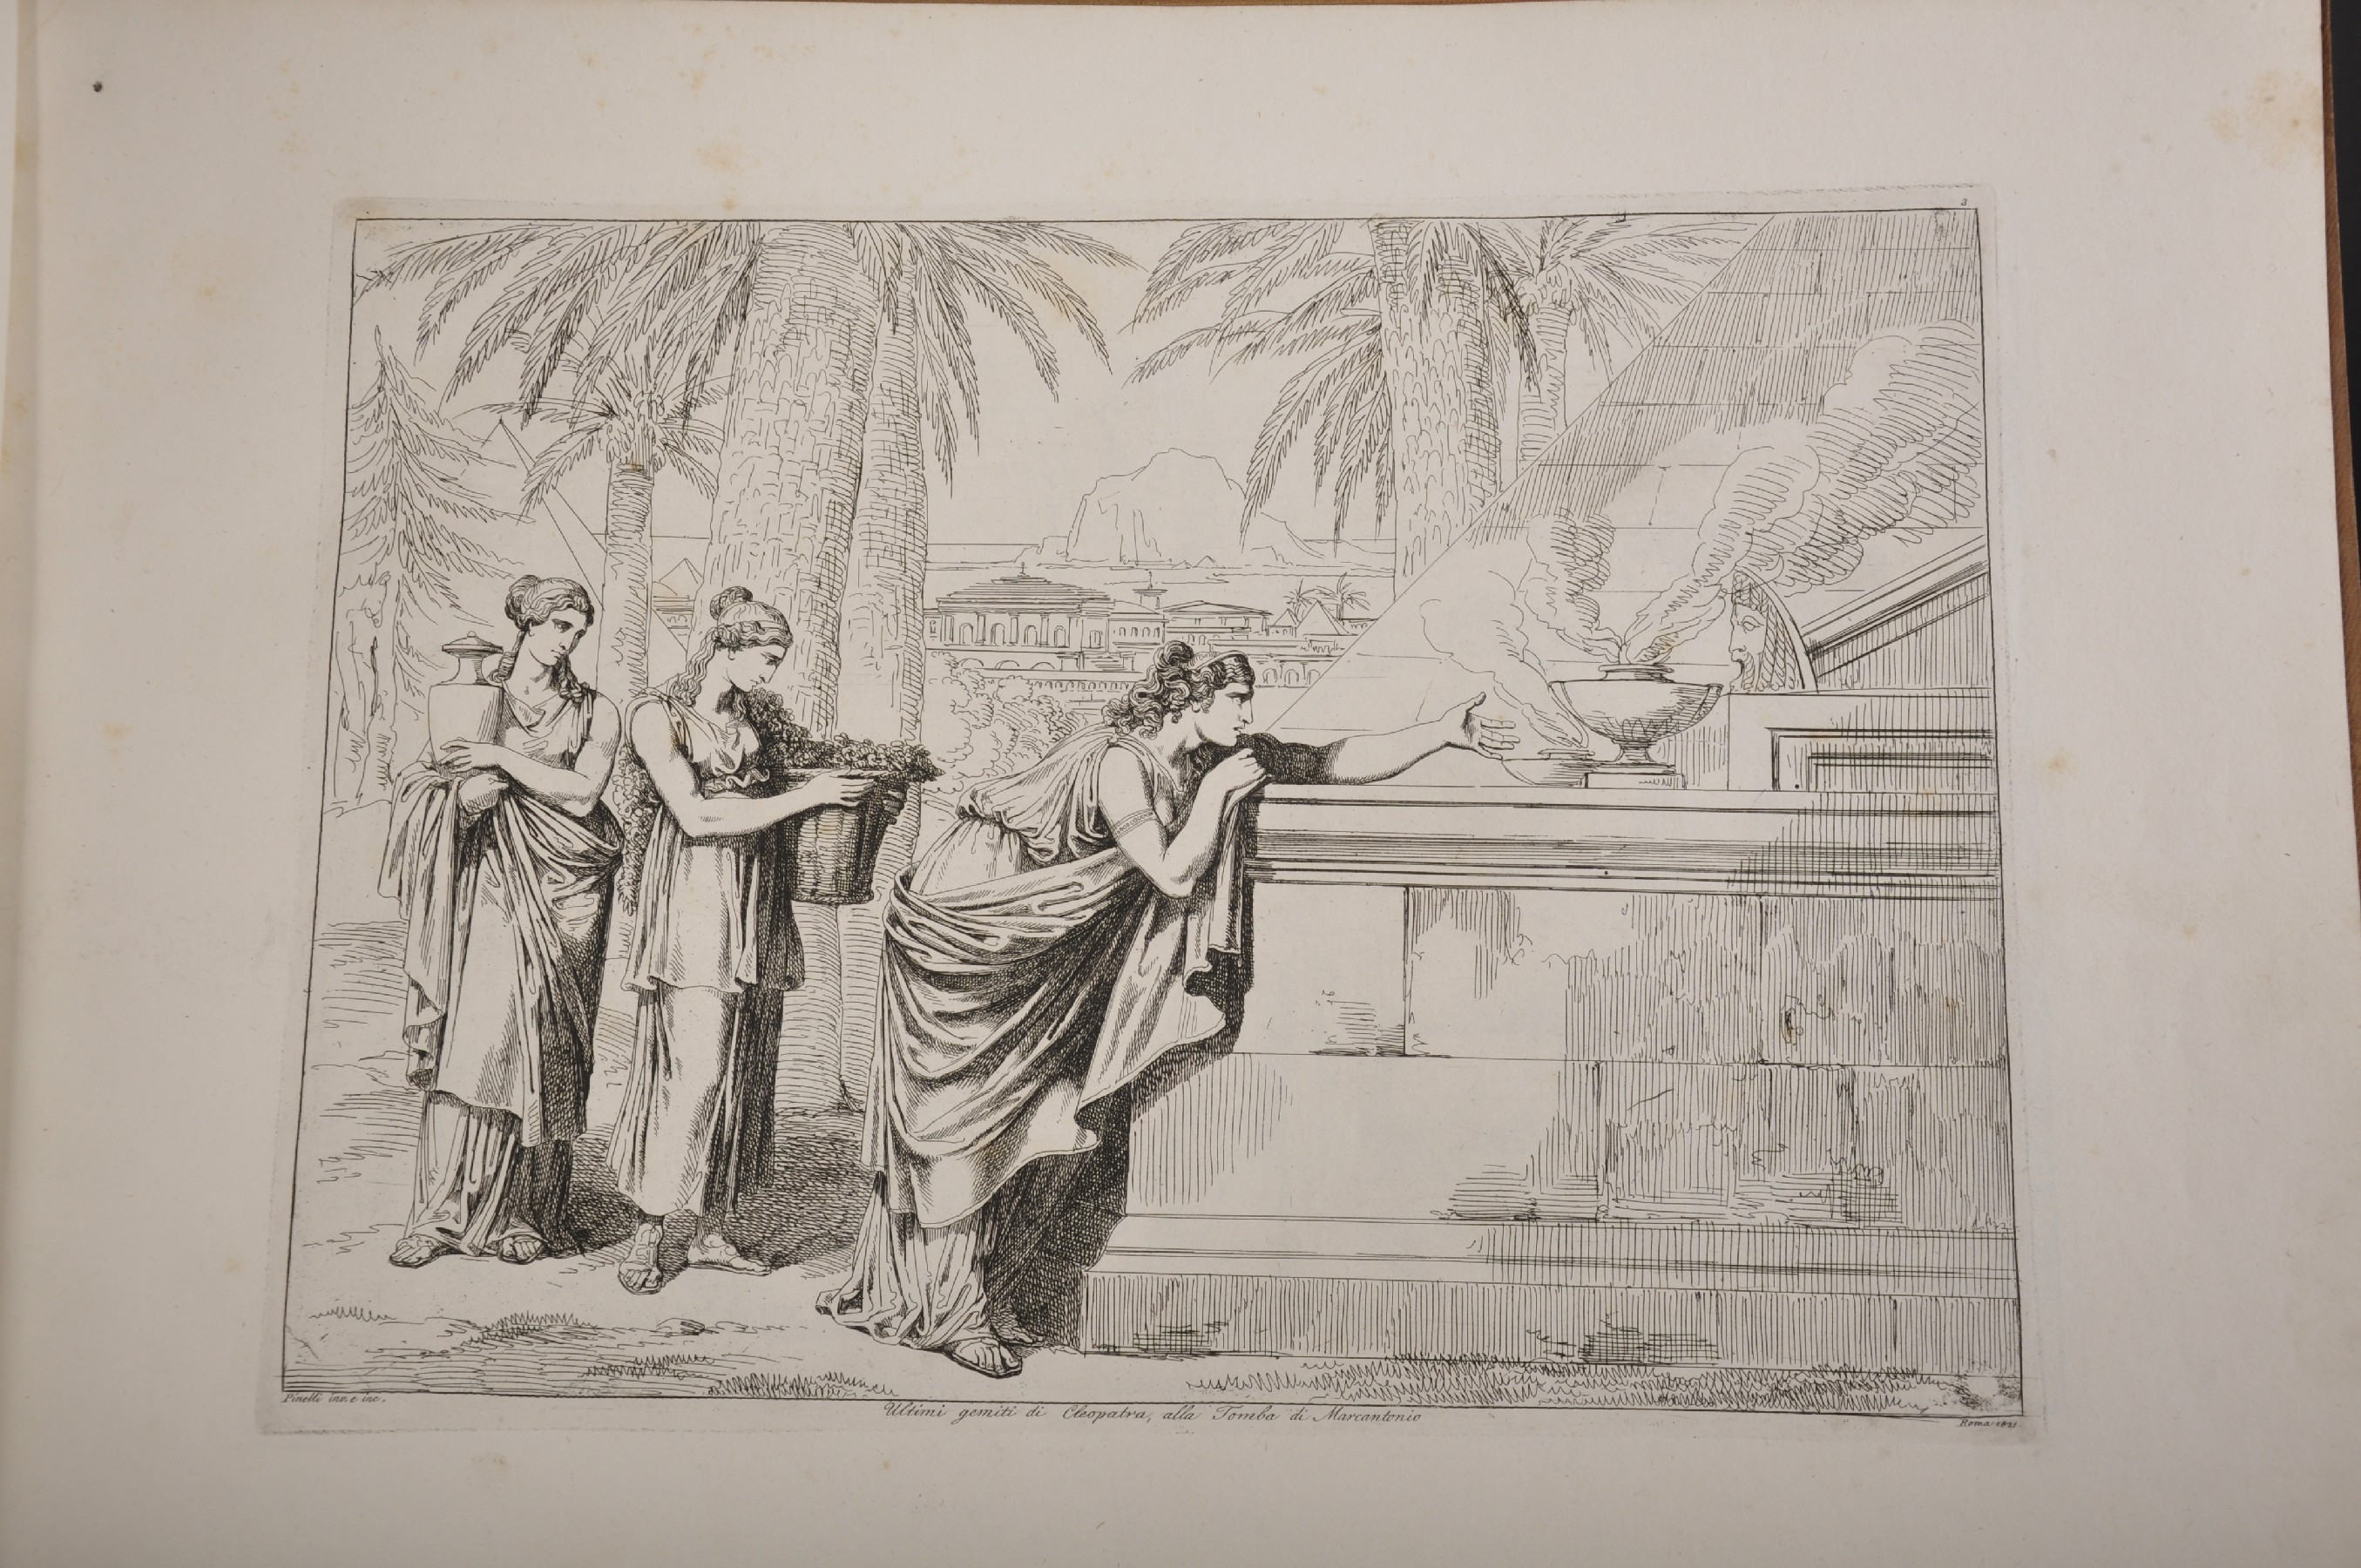 """After Bartolomeo Pinelli (1771-1835) Italian. """"Cleopatra"""", Engraving, 15"""" x 16.5"""", bound in """" - Image 4 of 8"""